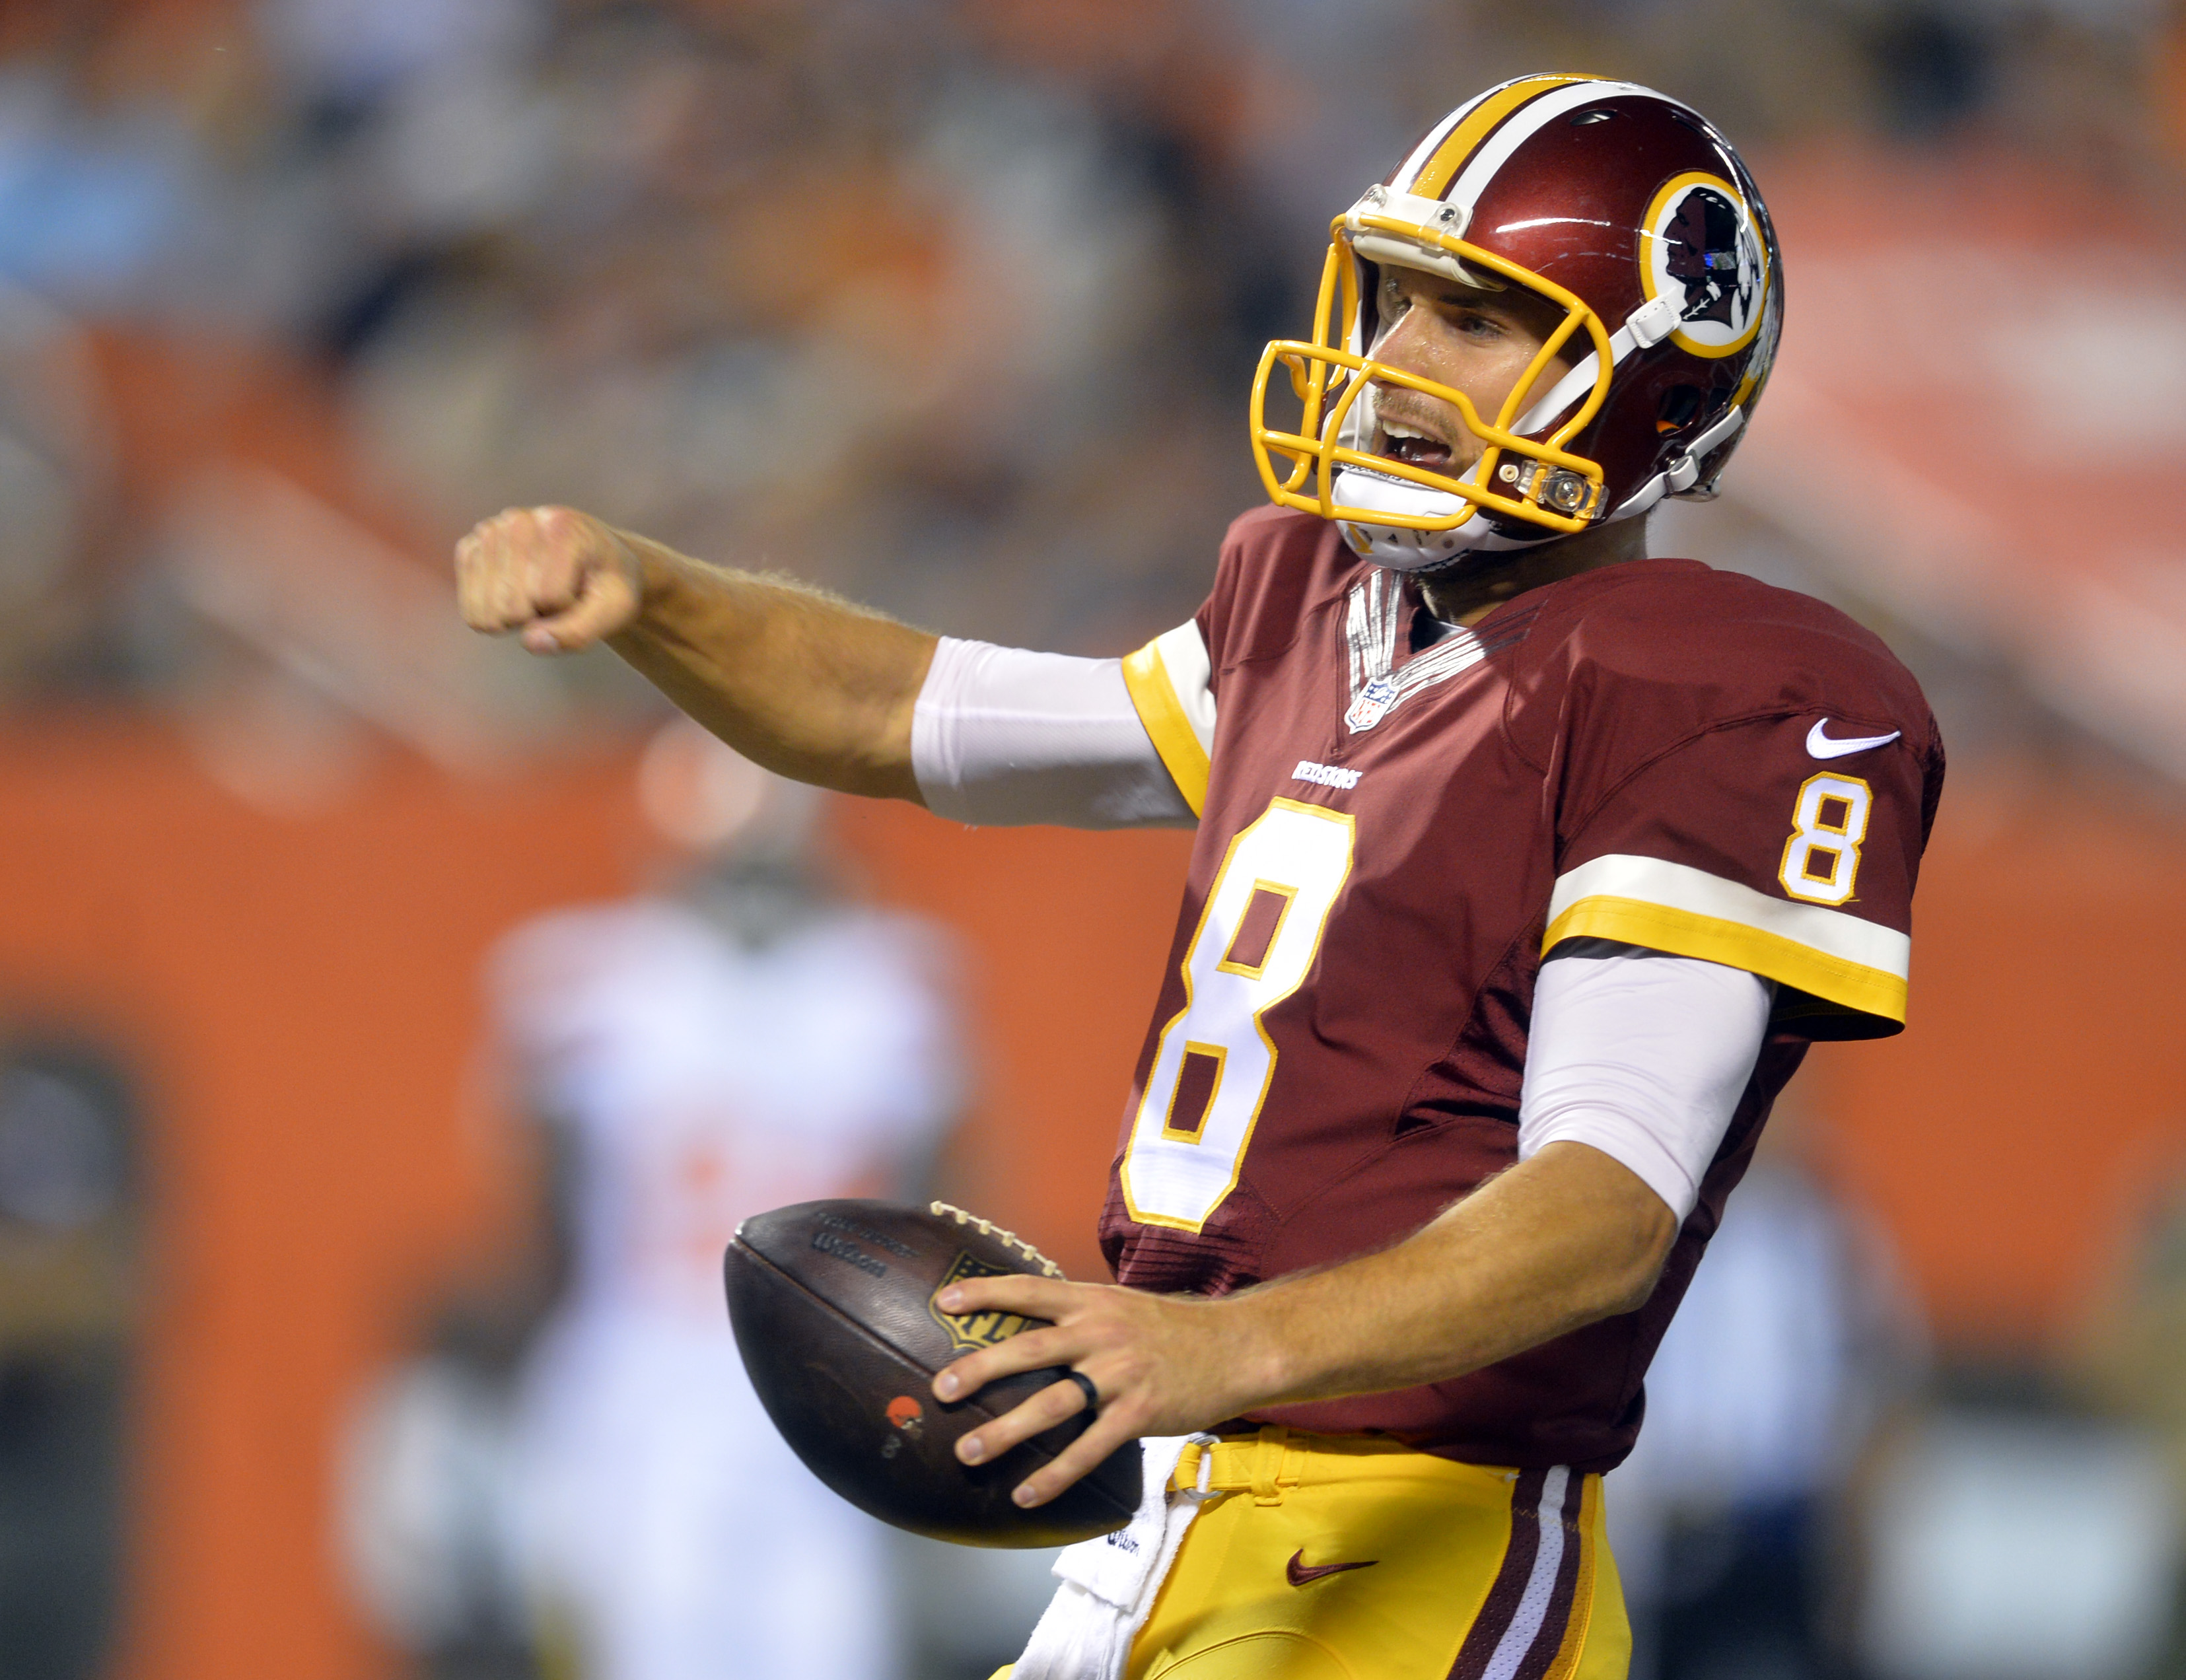 Washington Redskins quarterback Kirk Cousins celebrates after scrambling in for a 4-yard touchdown during the second quarter of an NFL preseason football game against the Cleveland Browns, Thursday, Aug. 13, 2015, in Cleveland. (AP Photo/David Richard)